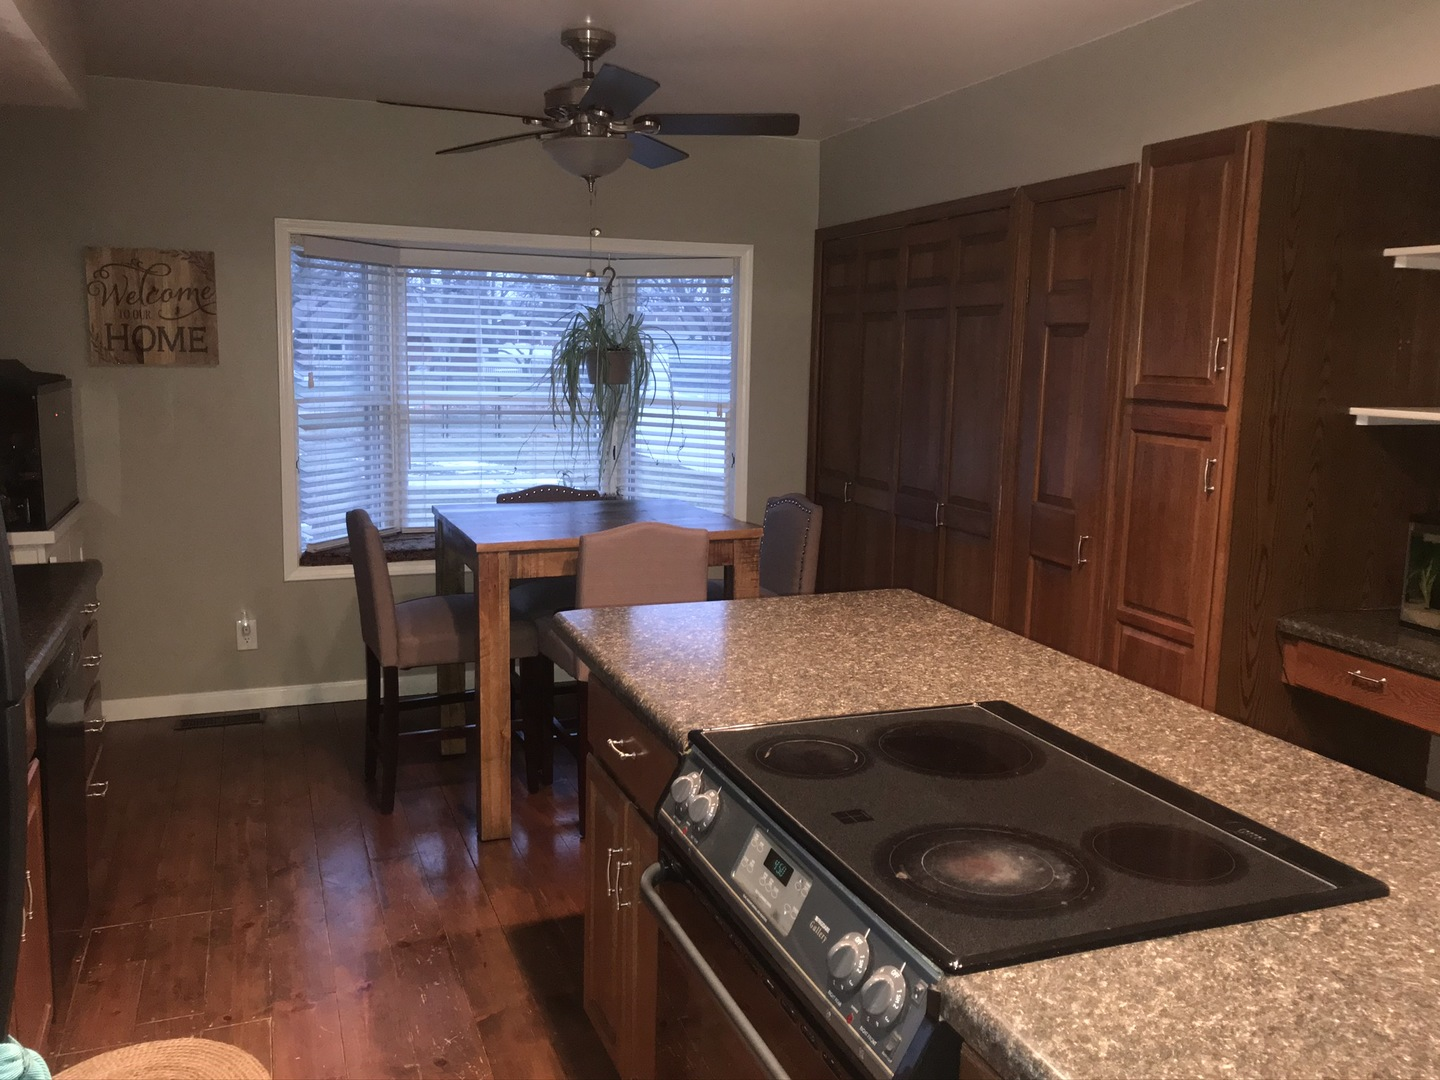 513 Lawrence ,Gibson City, Illinois 60936